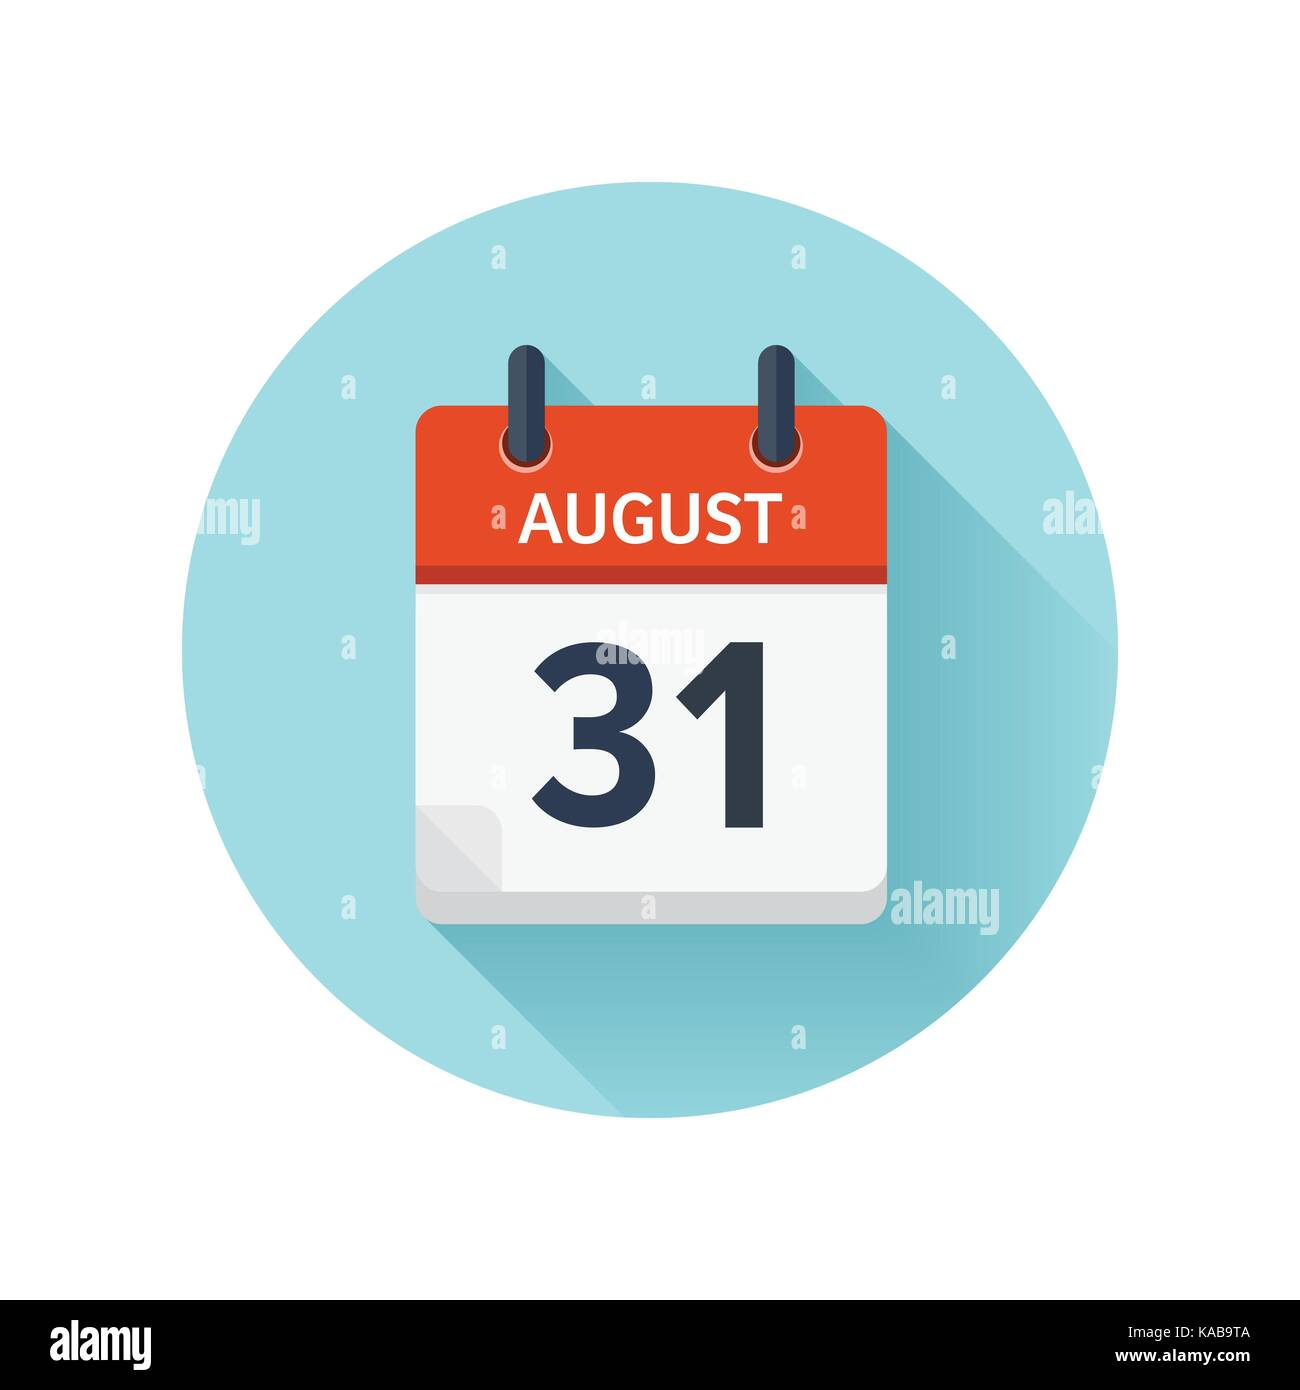 August 31  Vector flat daily calendar icon  Date and time